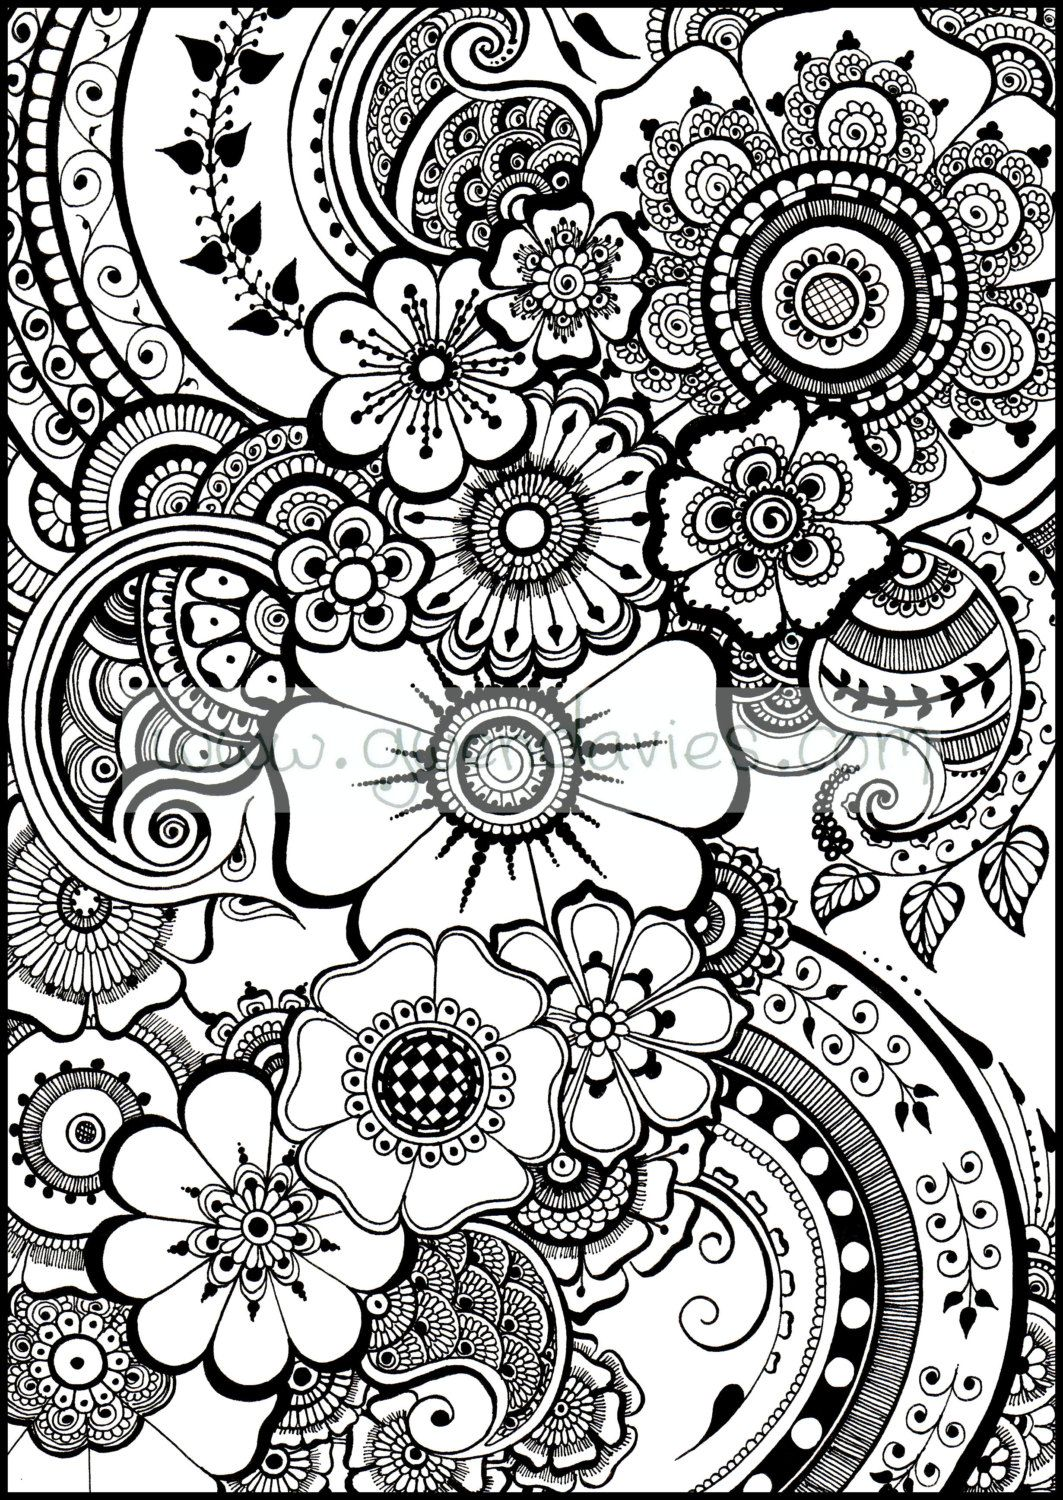 Beautiful Henna Flowers And Paisleys Colouring In Sheet Instant Download Paisley Coloring Pages Coloring Books Coloring Pages